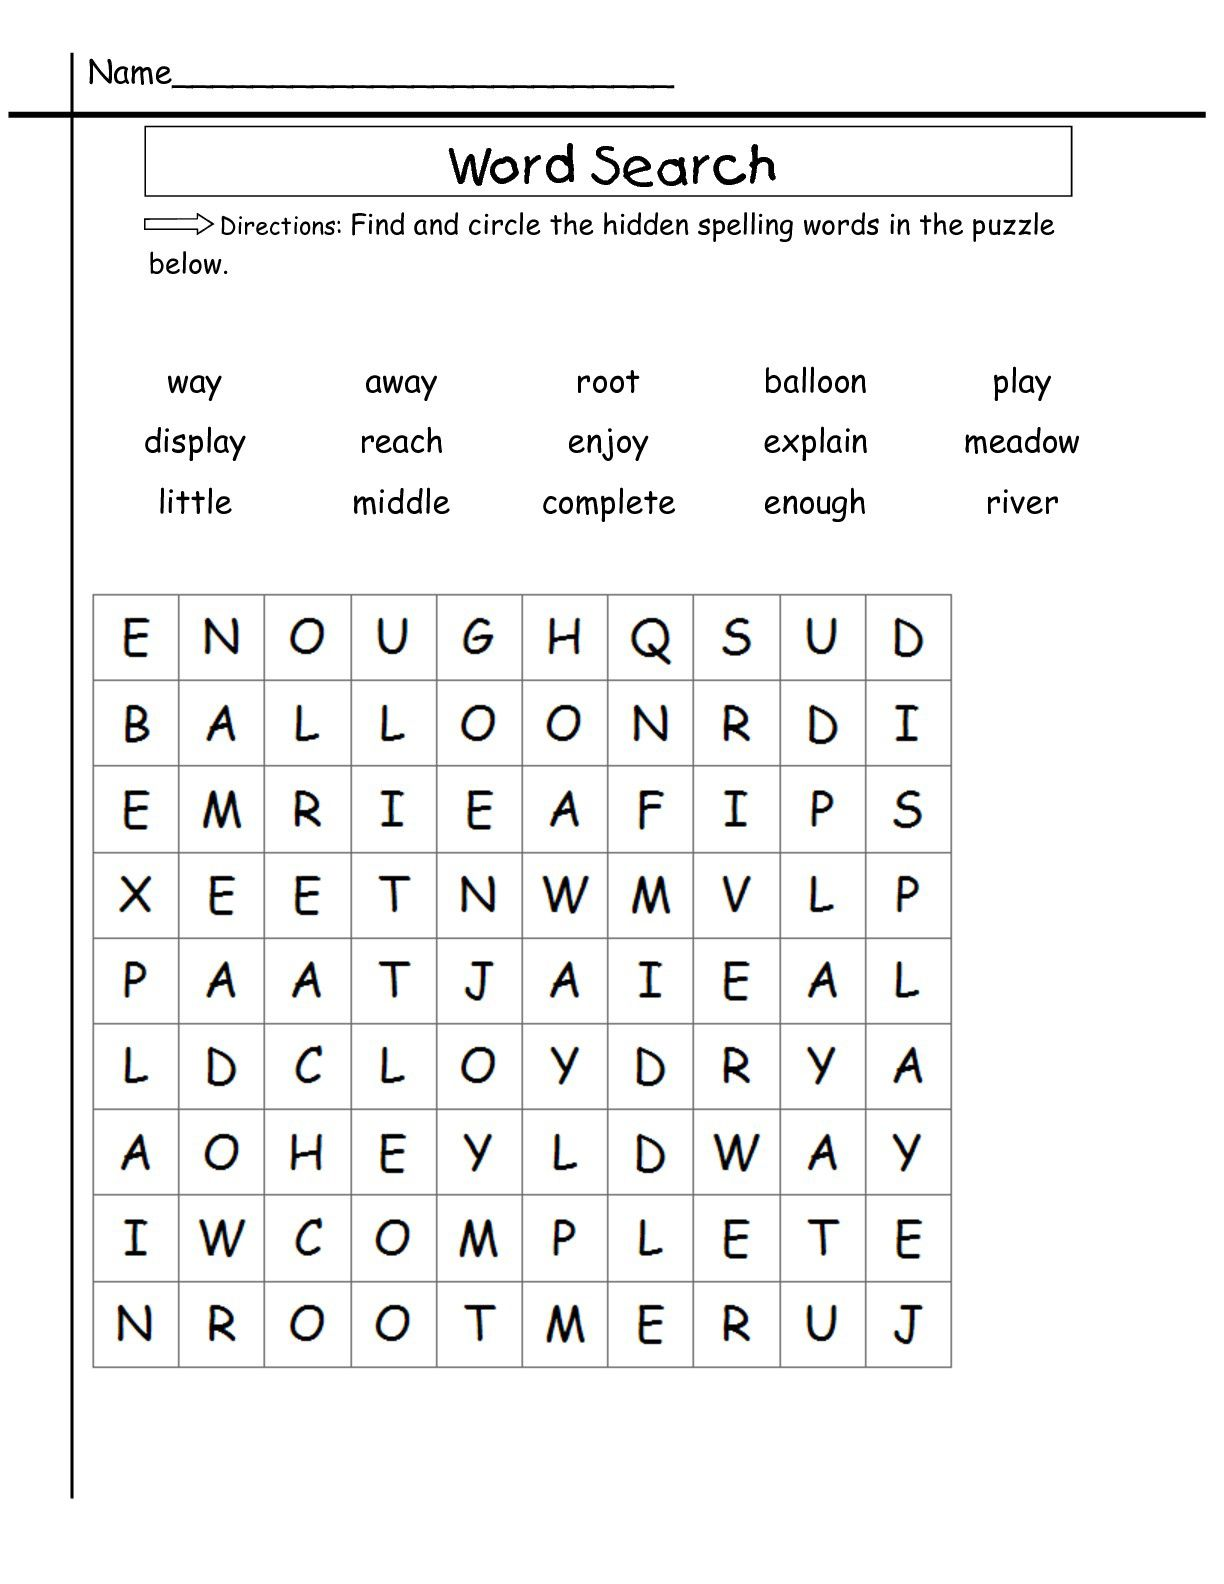 2nd Grade Word Search - Best Coloring Pages For Kids   Sight word worksheets [ 1584 x 1224 Pixel ]